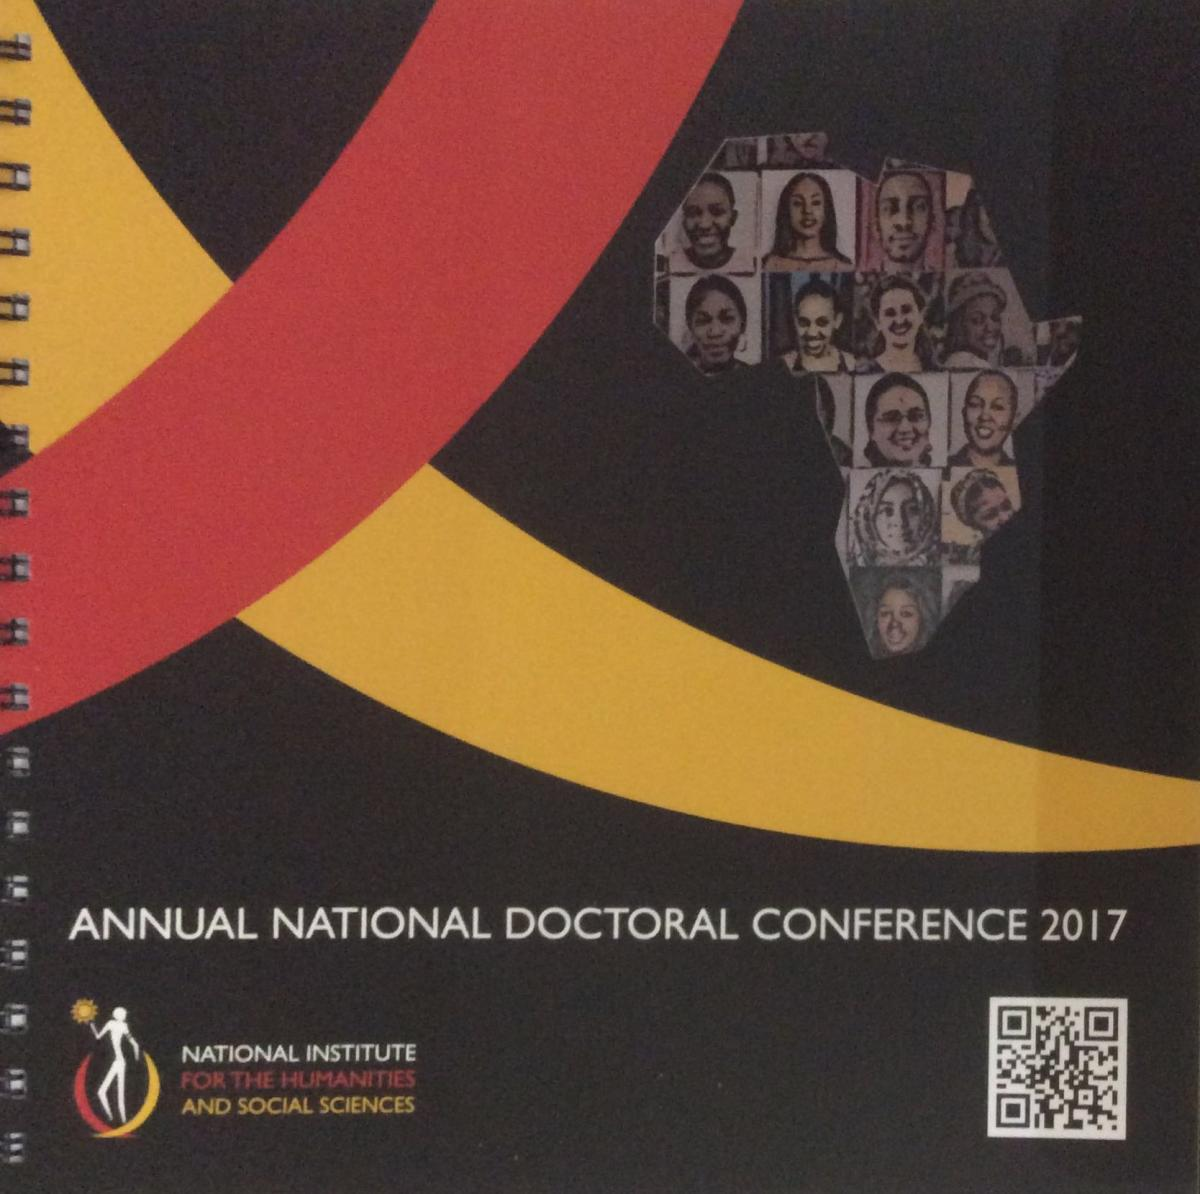 ANNUAL NATIONAL DOCTORAL CONFERENCE 2017